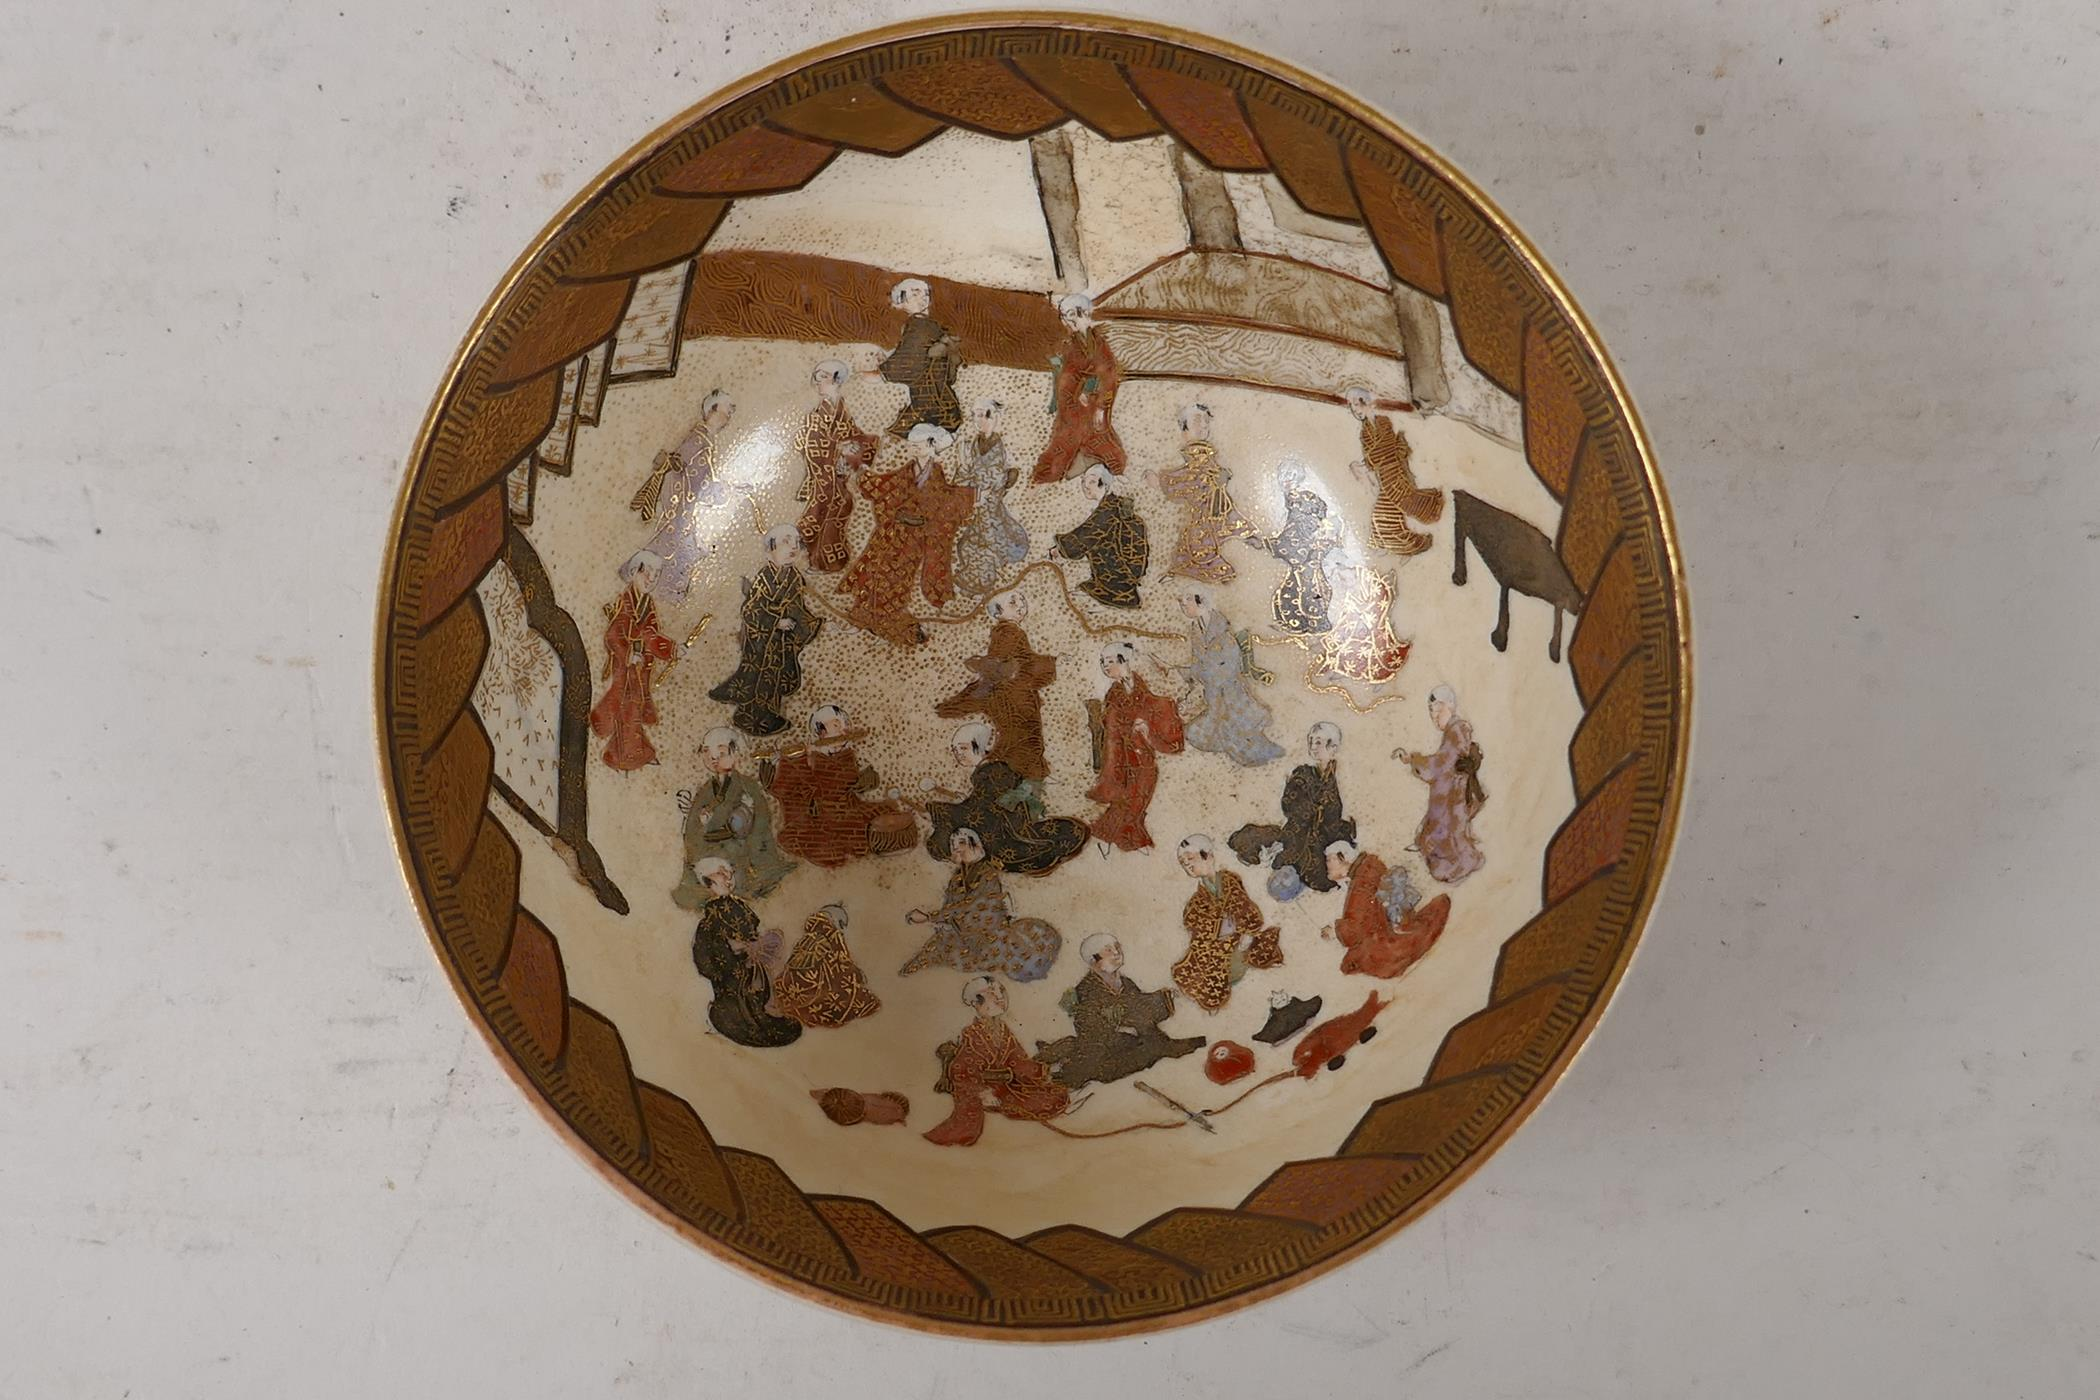 A Japanese meiji period satsuma bowl, decorated with children to the interior, the exterior with